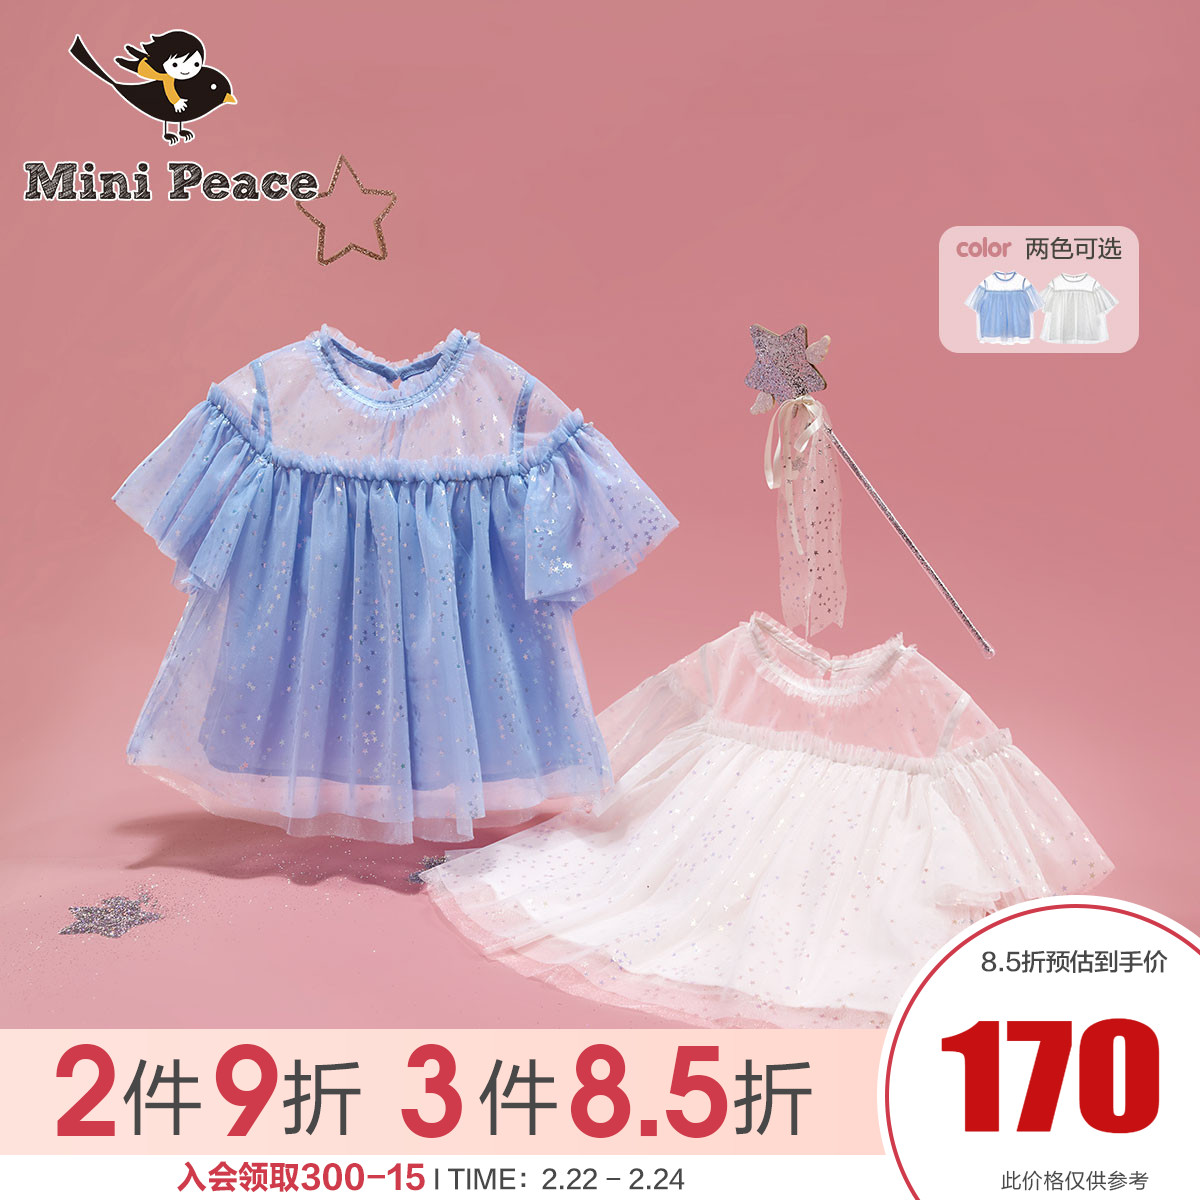 Minipeace children's clothing new spring and autumn style girl's thin top star short sleeve Princess two colors